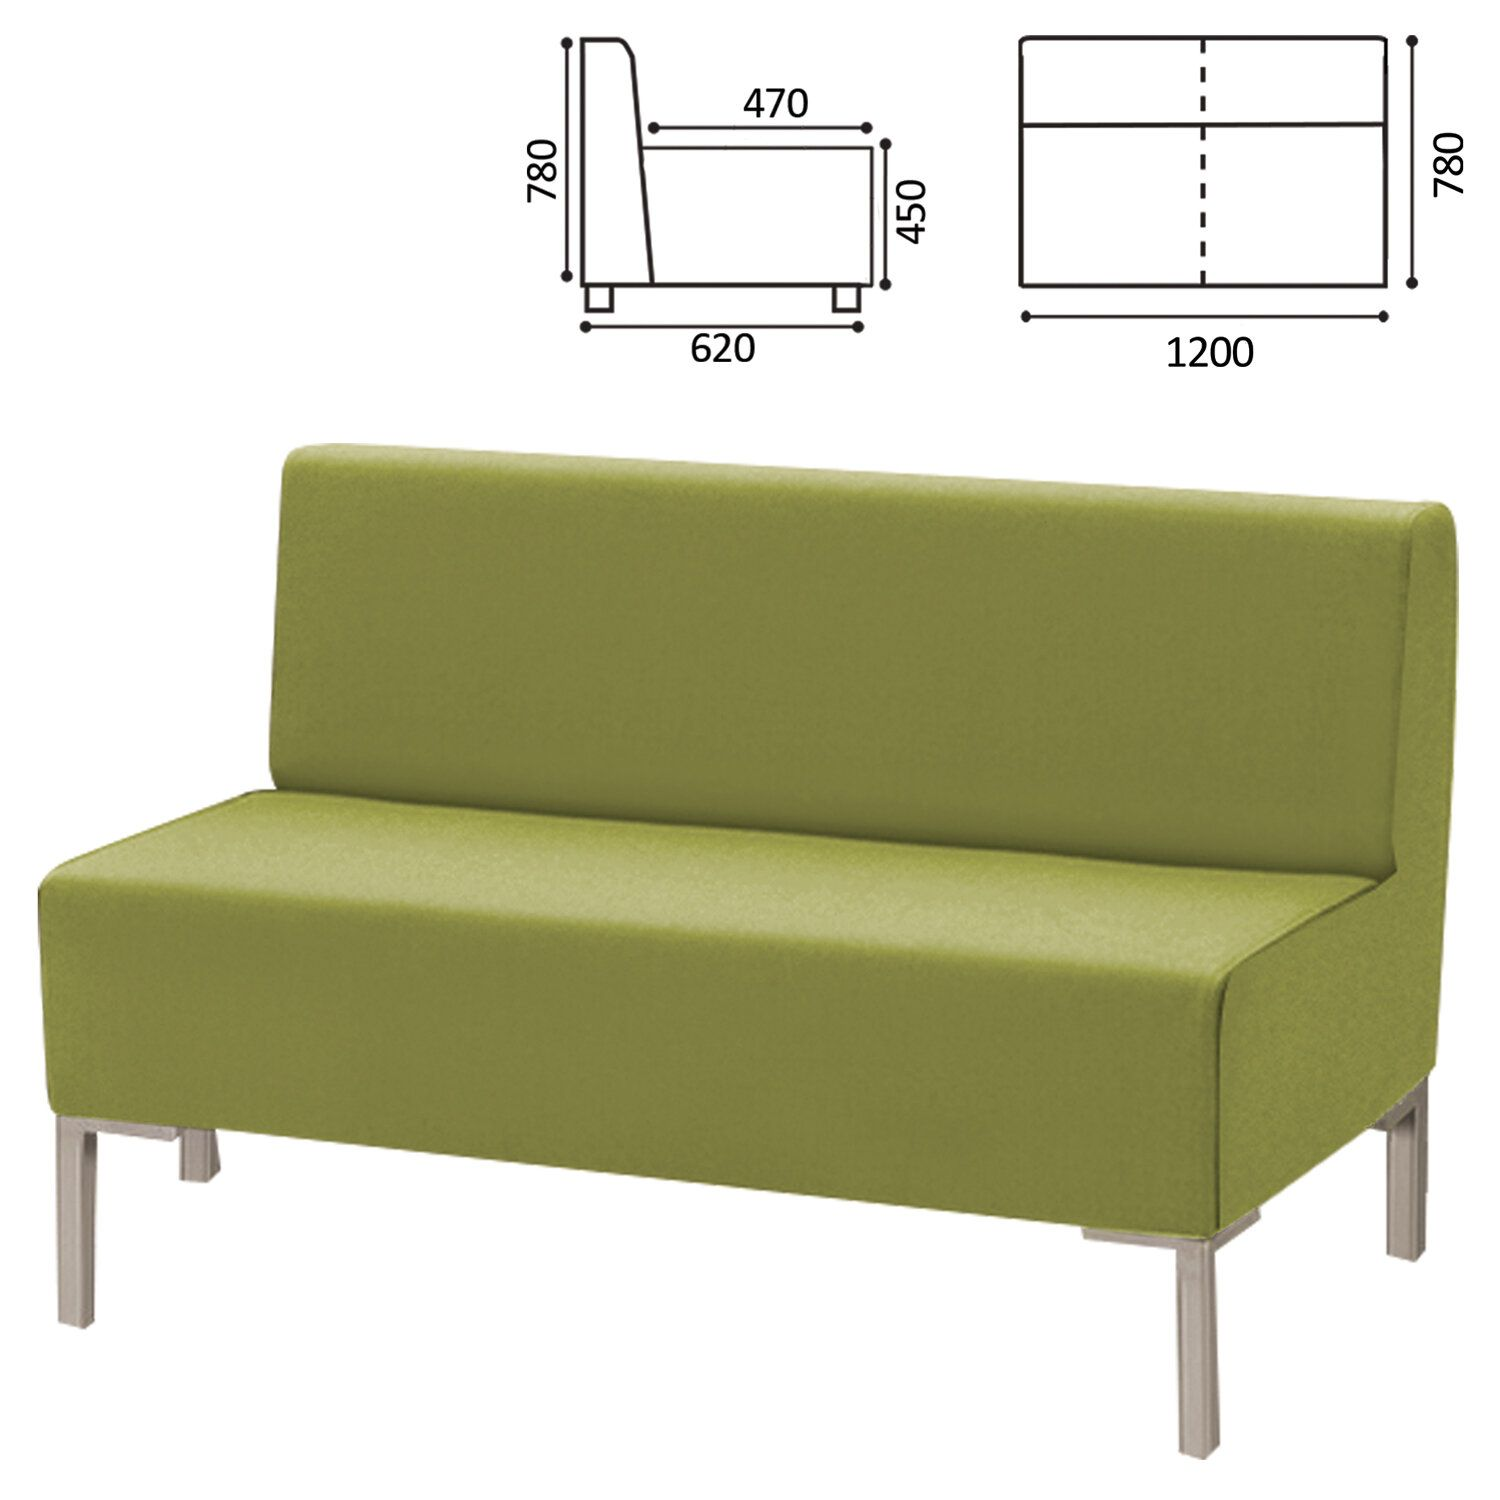 """GARTLEX / Sofa soft double """"Host"""" M-43, 1200x620x780 mm, without armrests, eco-leather, light green"""